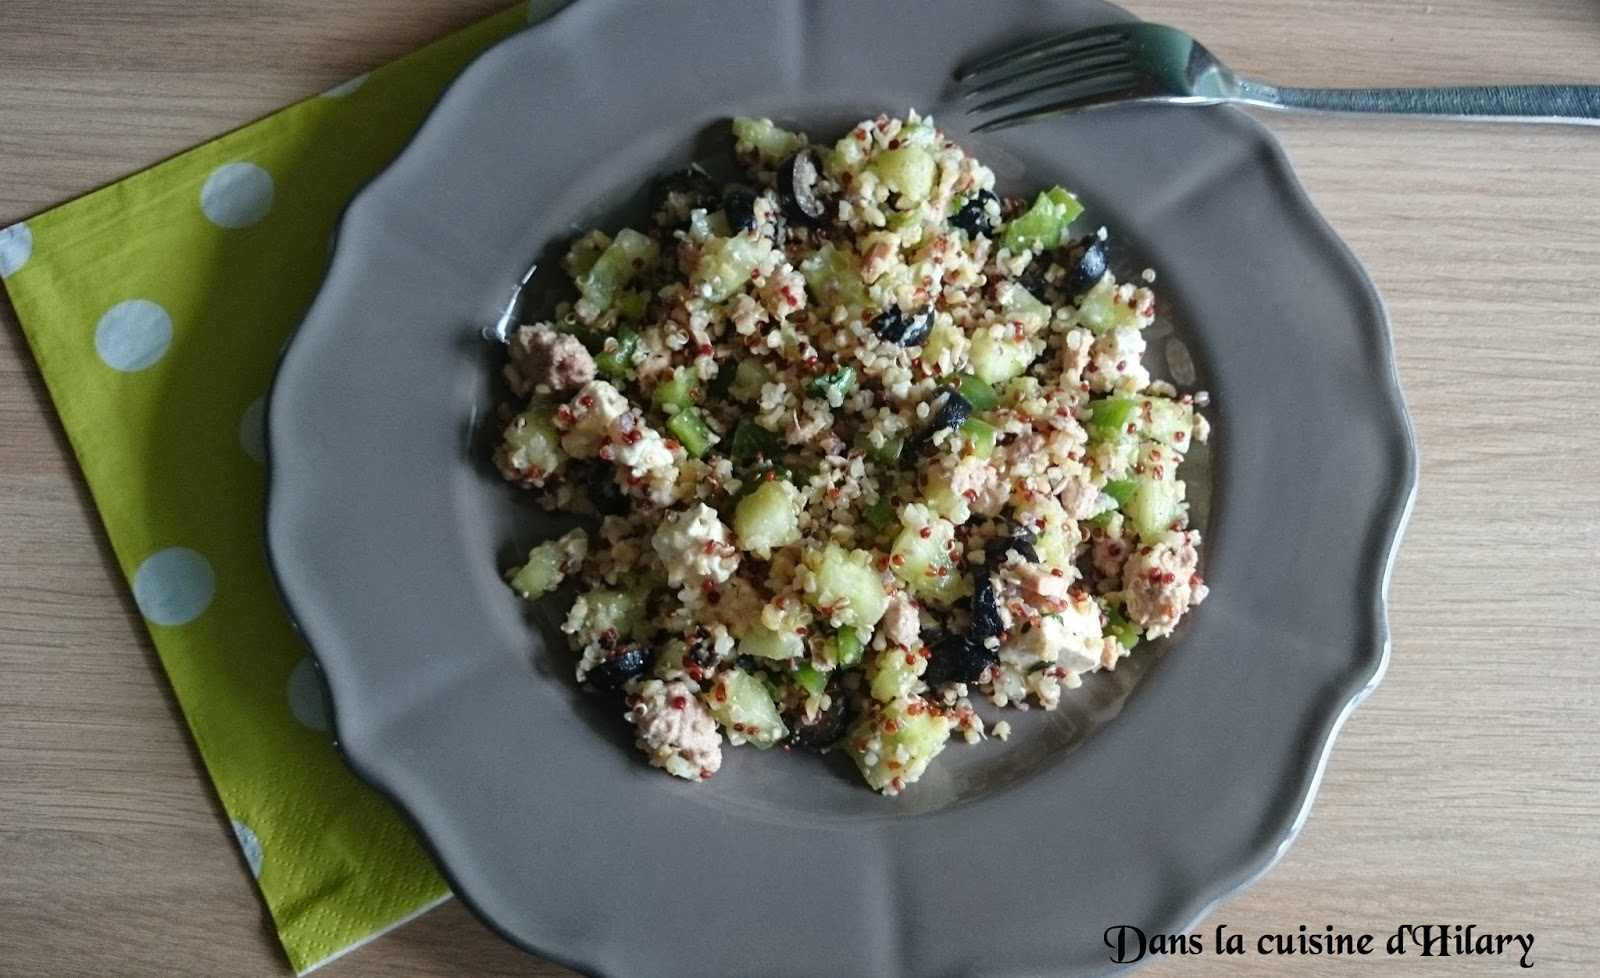 Salade gourmande au quinoa et ses influences Grecques